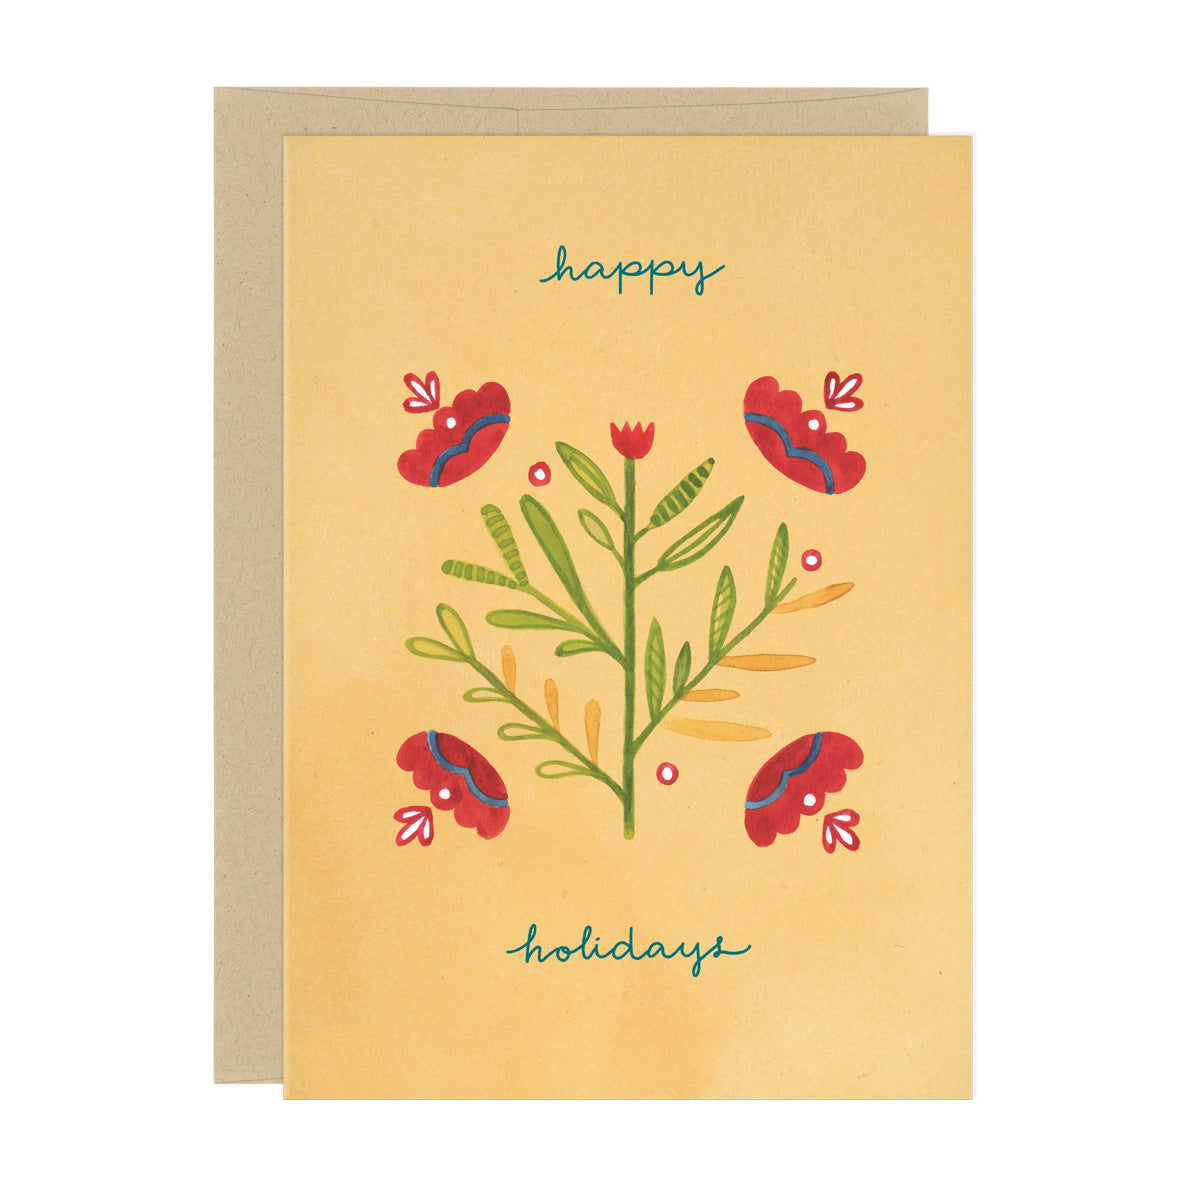 "Red and green decorative, geometric flower pattern centered on an orange background. Handwritten text reads, ""happy holidays"""